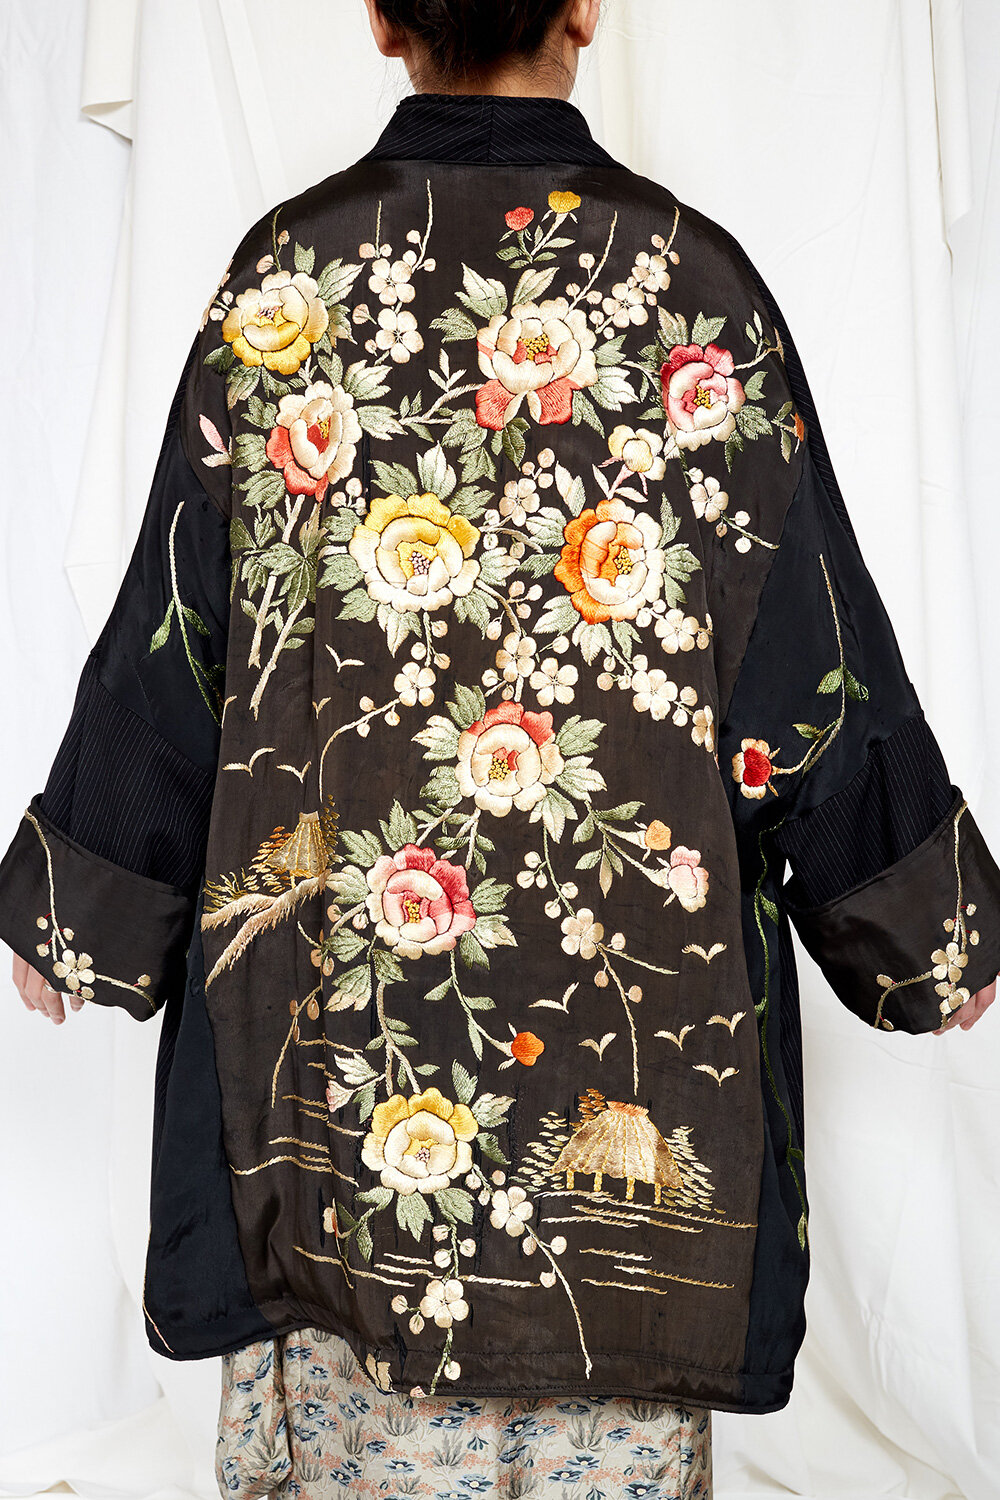 By Walid Womenswear Piano Shawl Floral Embroidered Silk Coat in Black AW20